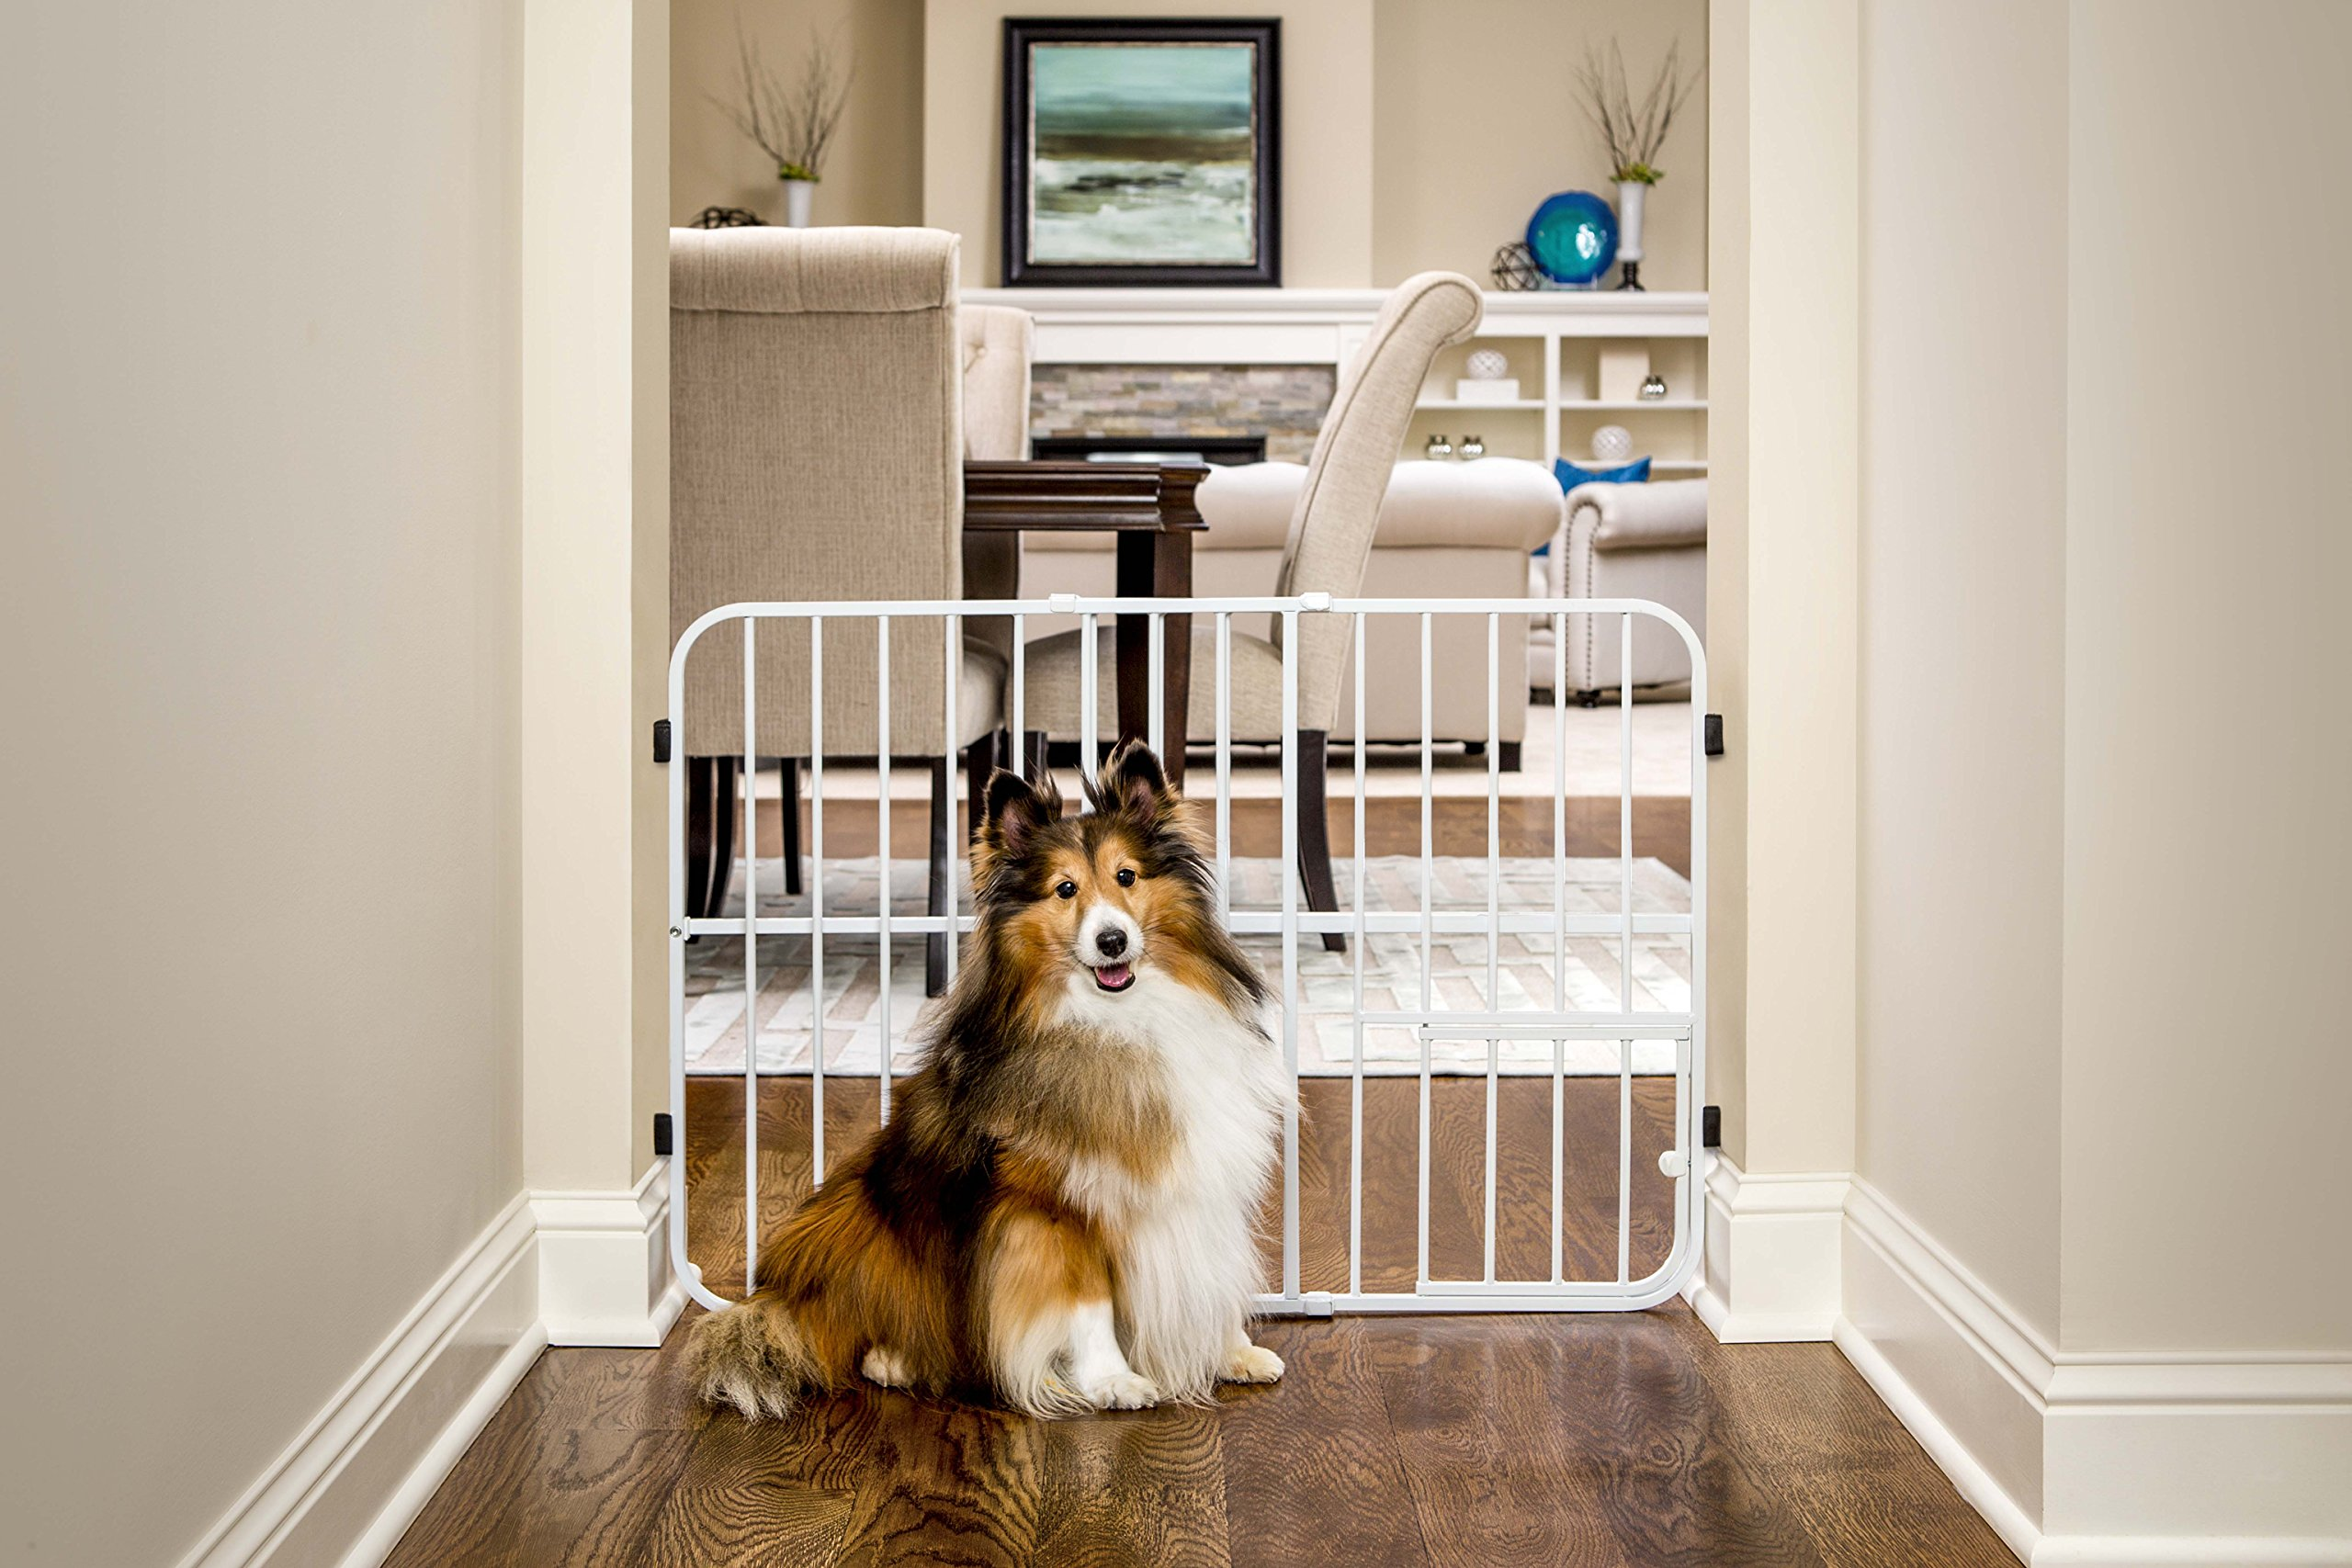 Carlson Metal Expandable Pet Gate, 26-42 inches wide, Pressure Mount by Carlson Pet Products (Image #1)